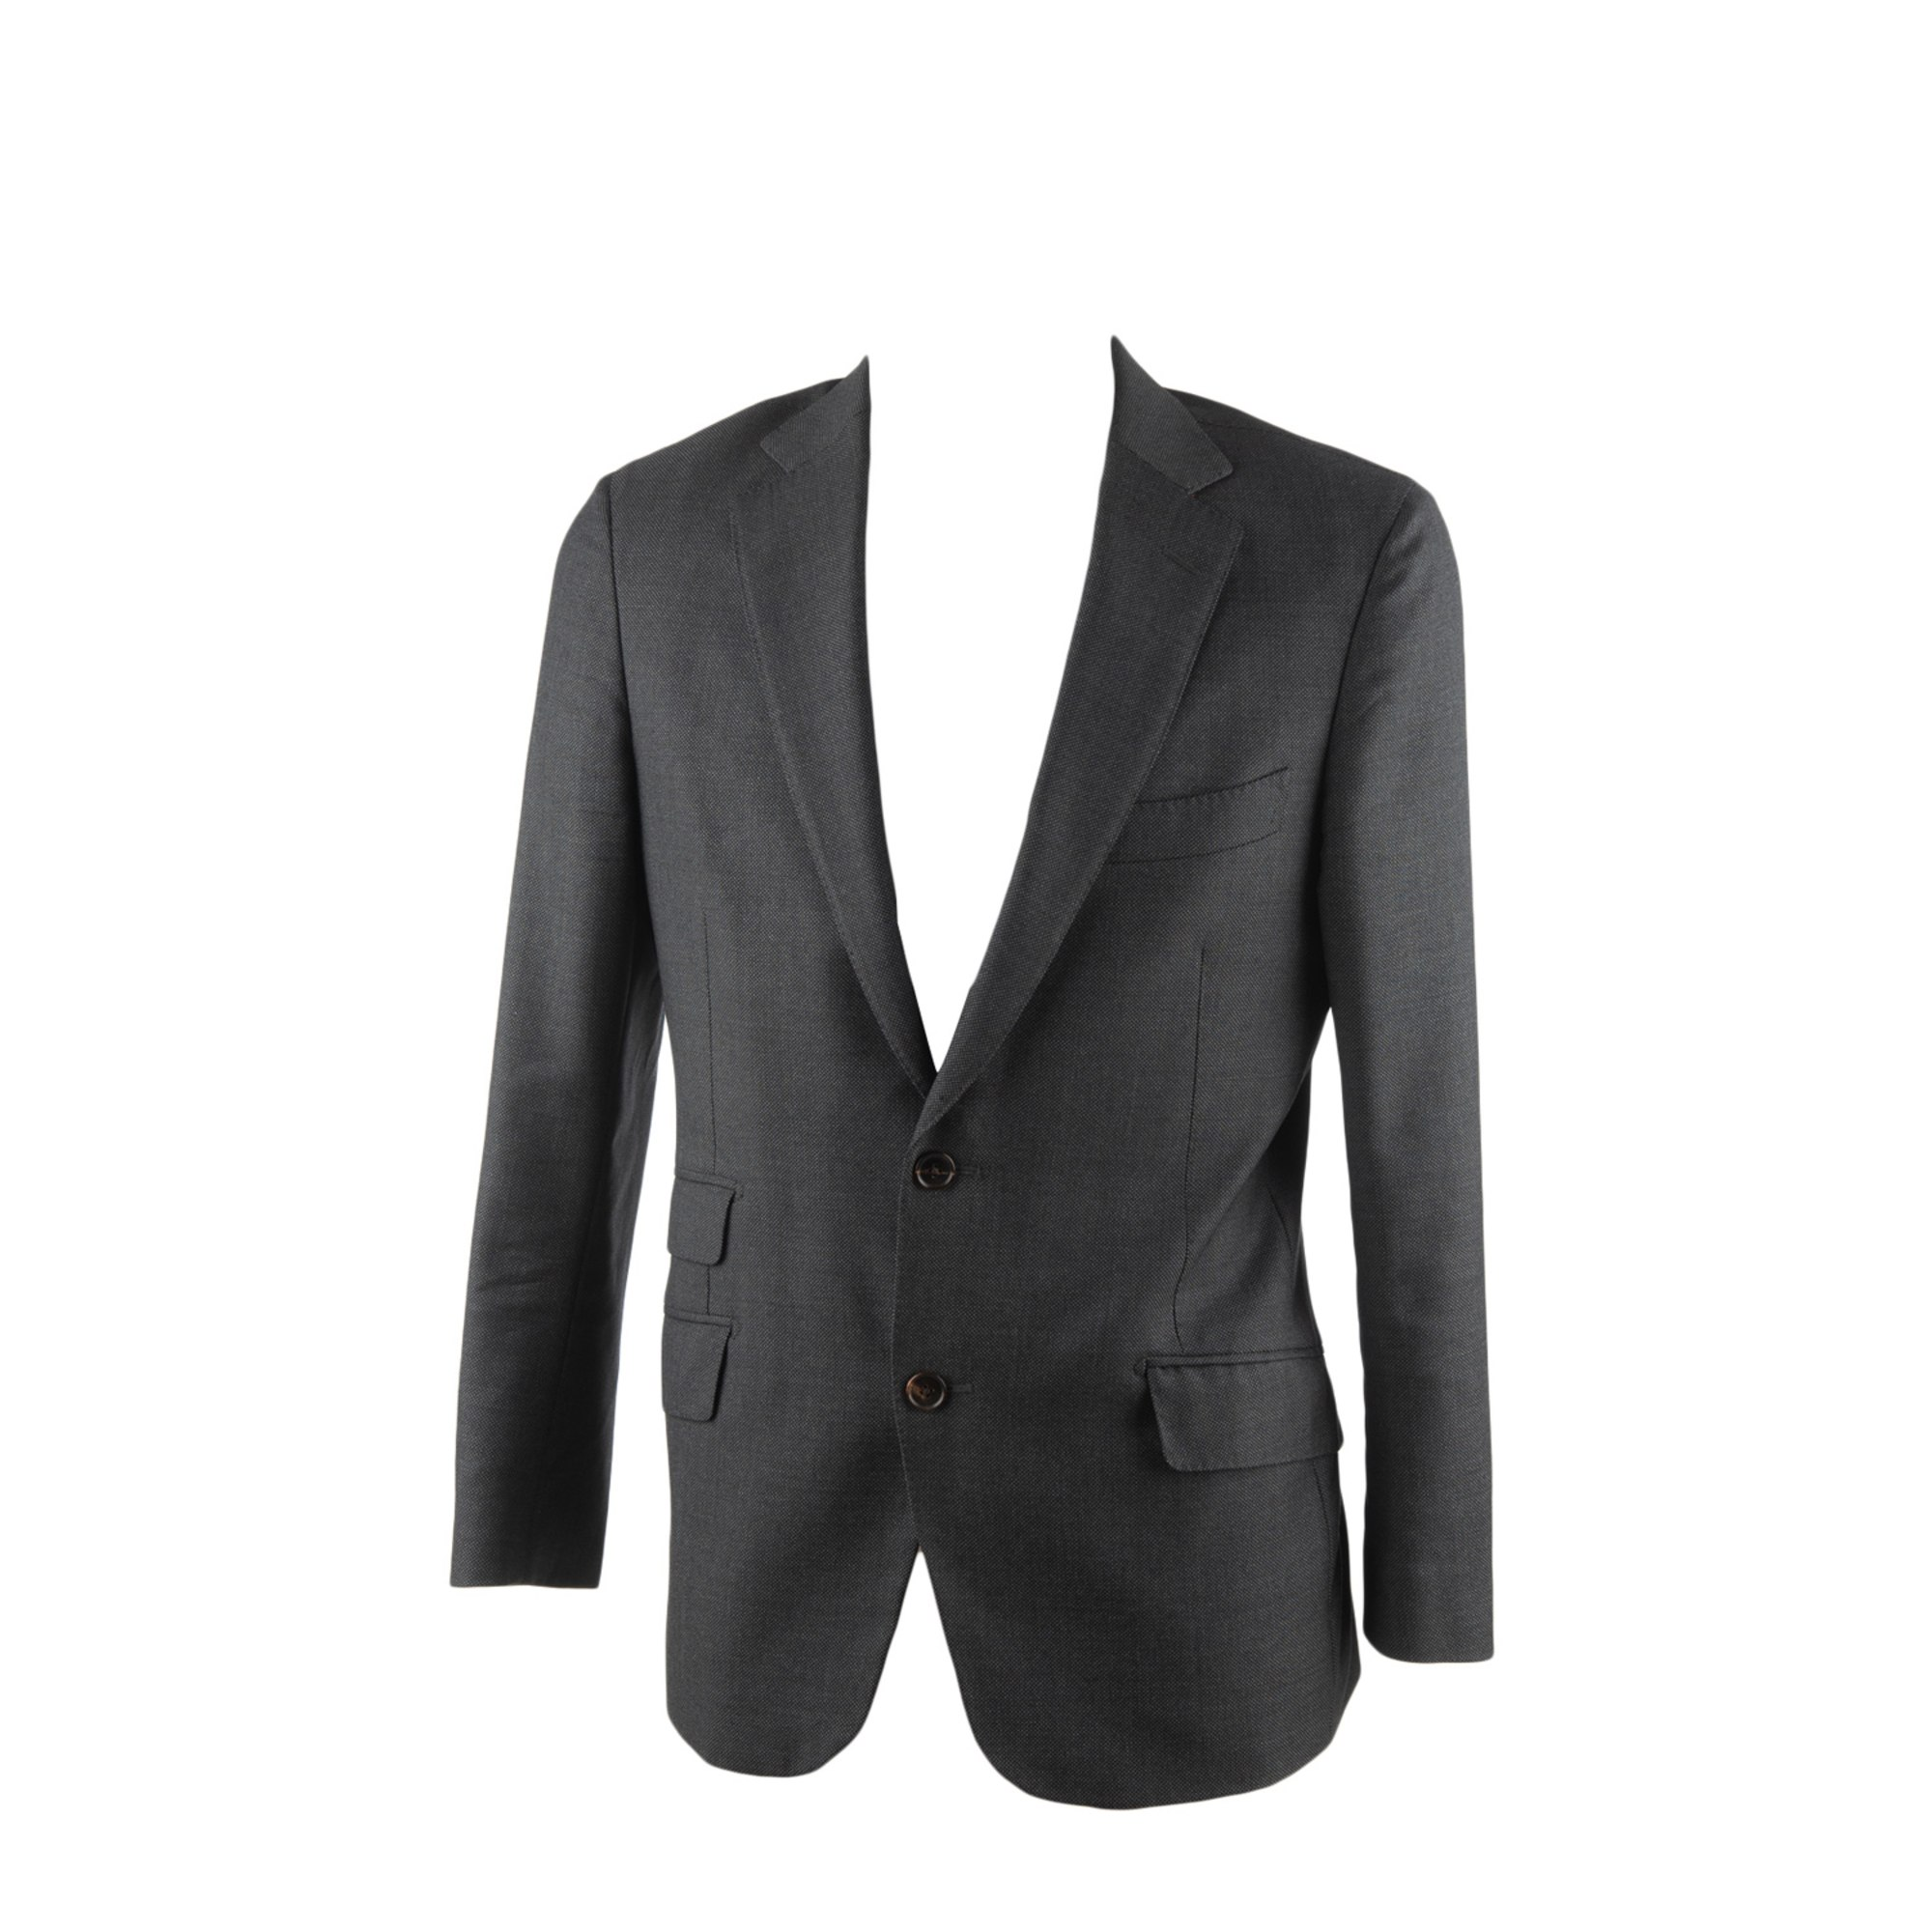 Veste de costume SUITSUPPLY Gris, anthracite